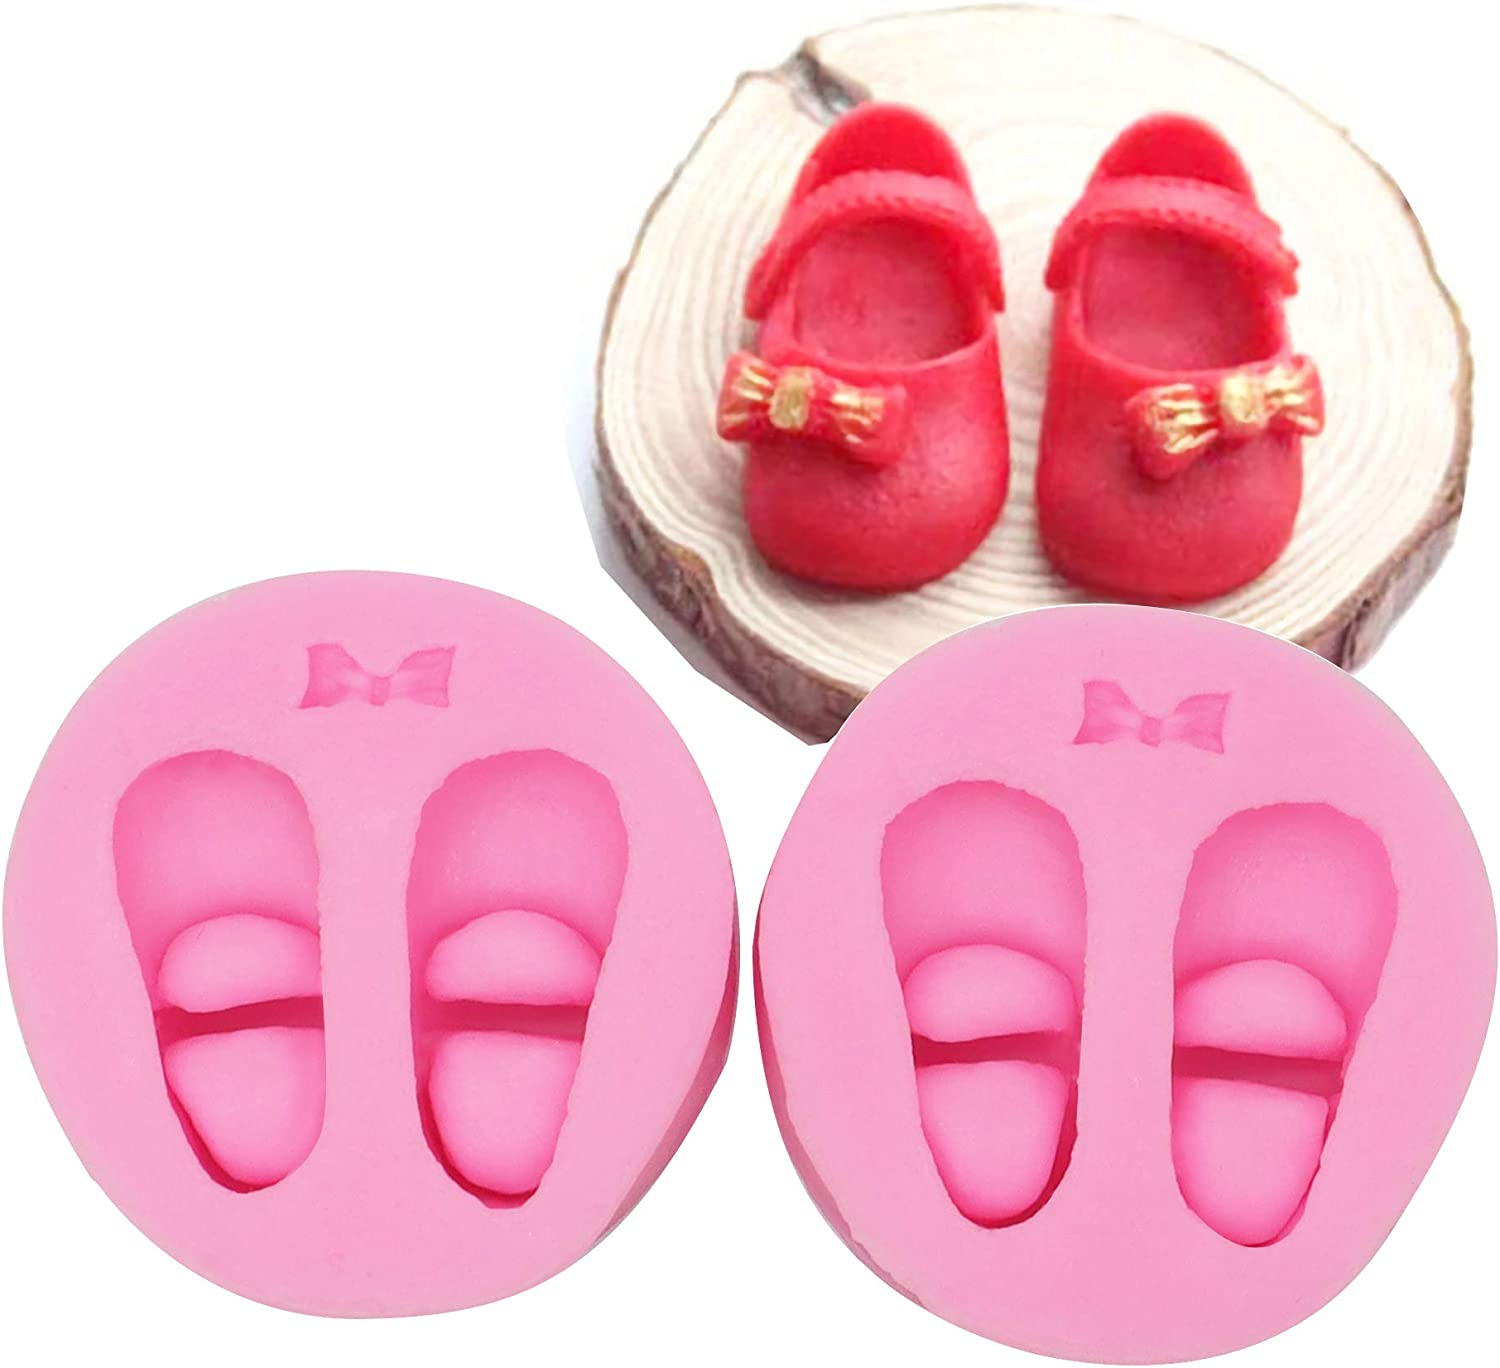 HengKe 2 pcs Baby foot print Baking Molds,3D Baby Shoe Pair with for Fondant, Fimo Clay, Soap Cake Icing Decoration, Sculpted Flower royal Lace baroque scroll Silicone Mold Fondant Mold